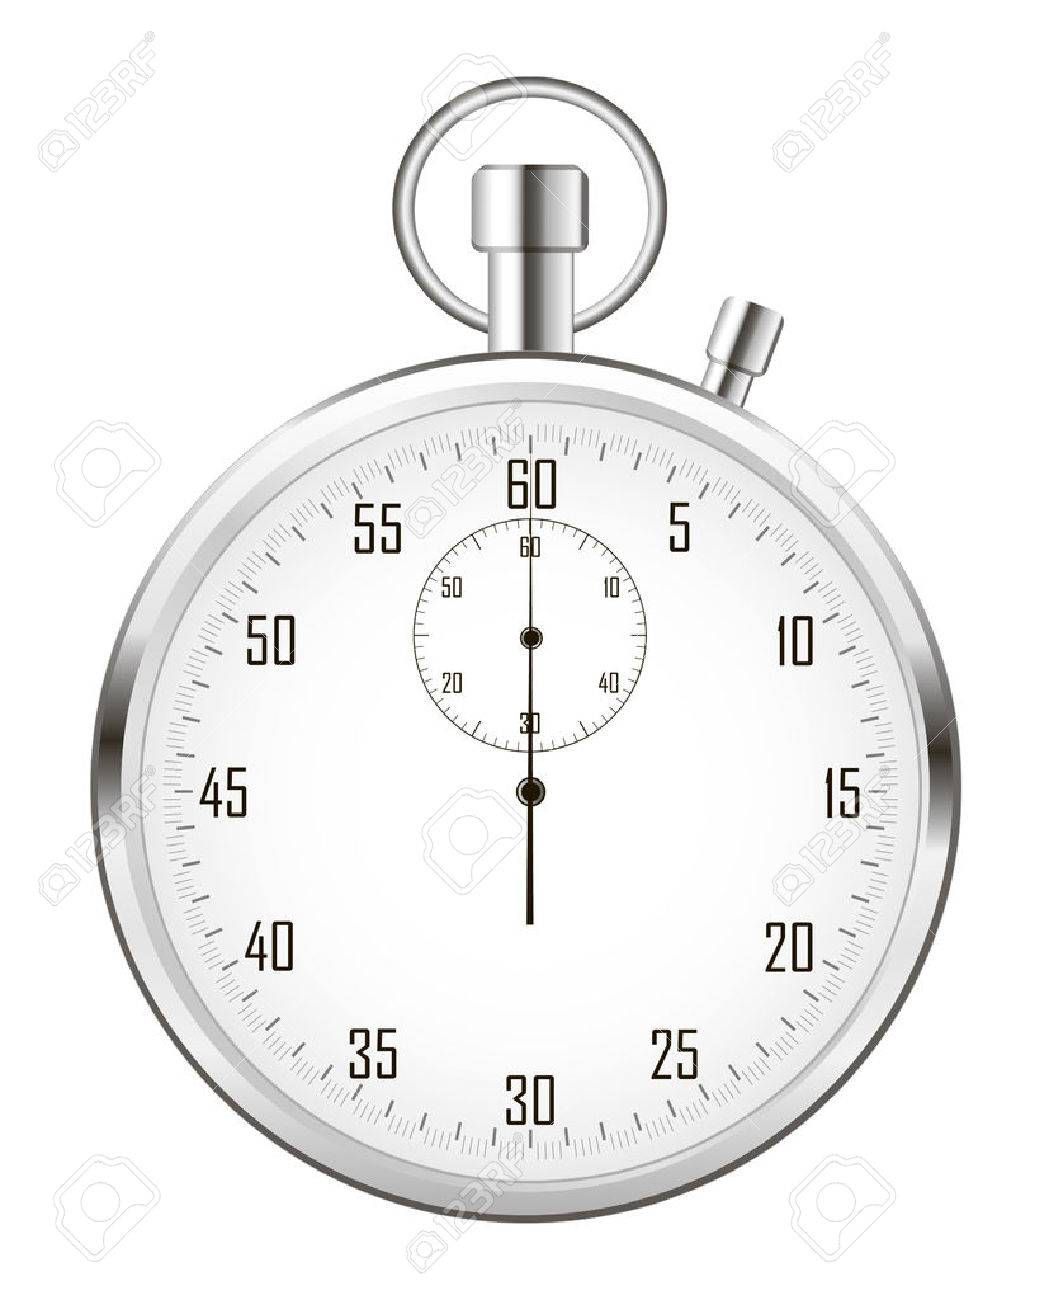 Stopwatch (or chronometer) isolated on white background. - 51233778